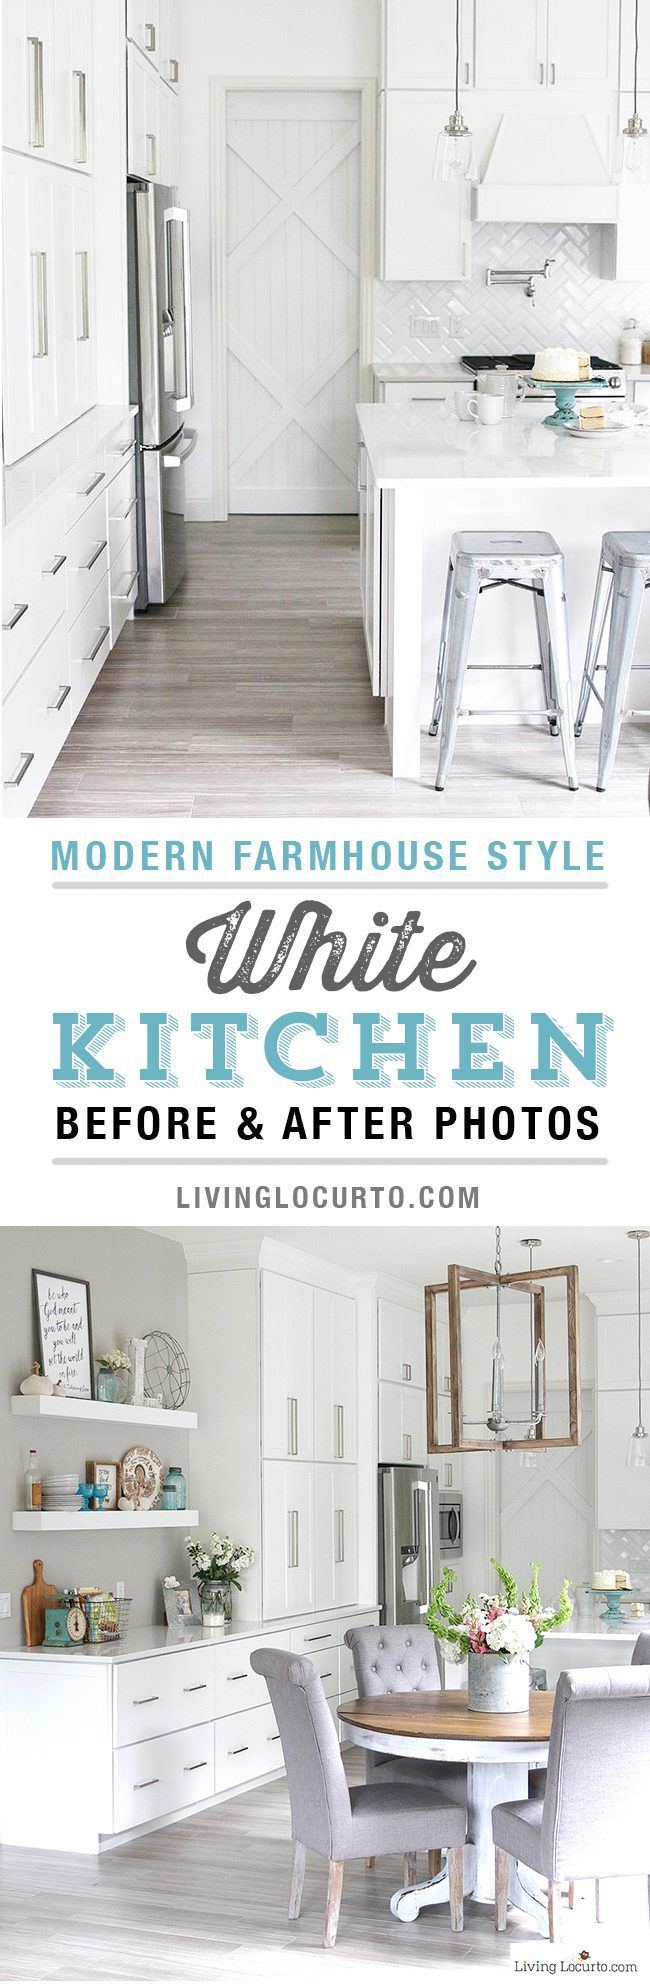 Amazing Before And After Photos Of A Modern Farmhouse Style Kitchen Home Remodel Decorating Insp